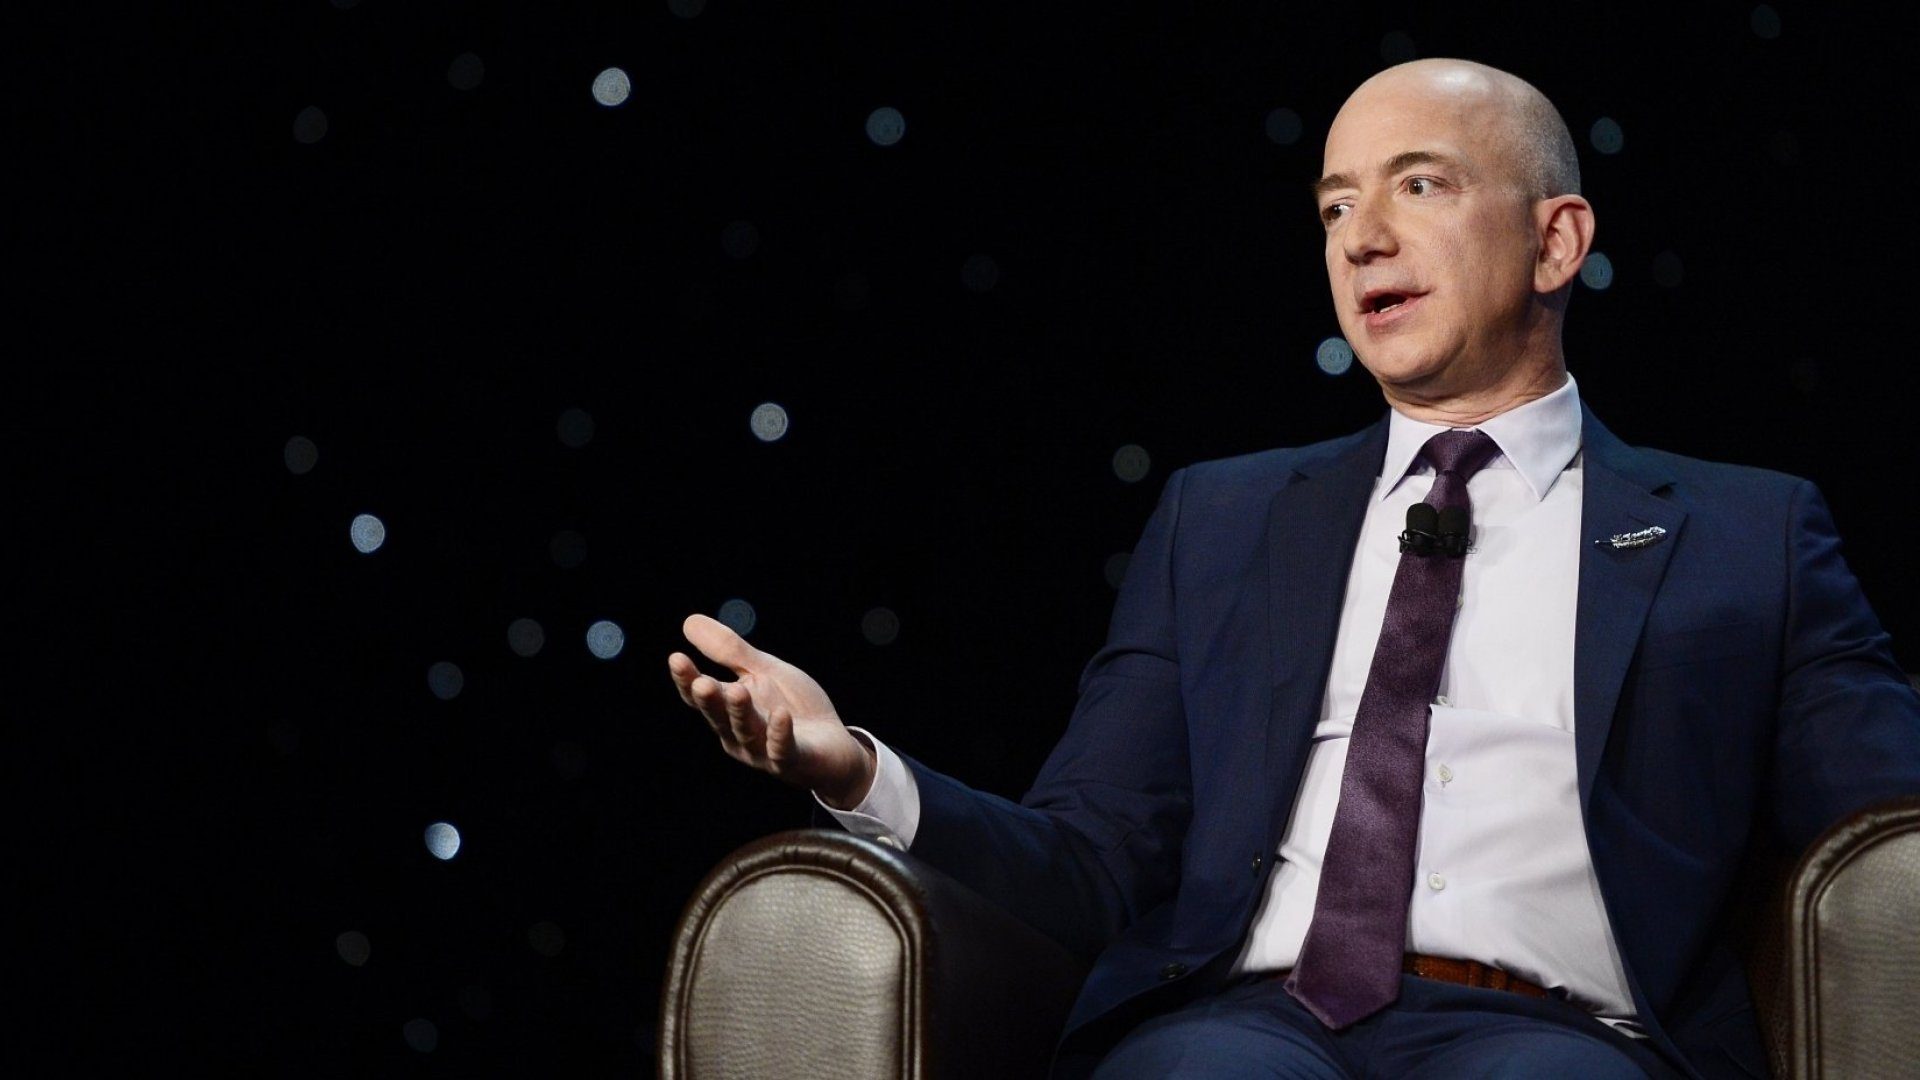 Jeff Bezos's Secret for Making Decisions and Staying Focused